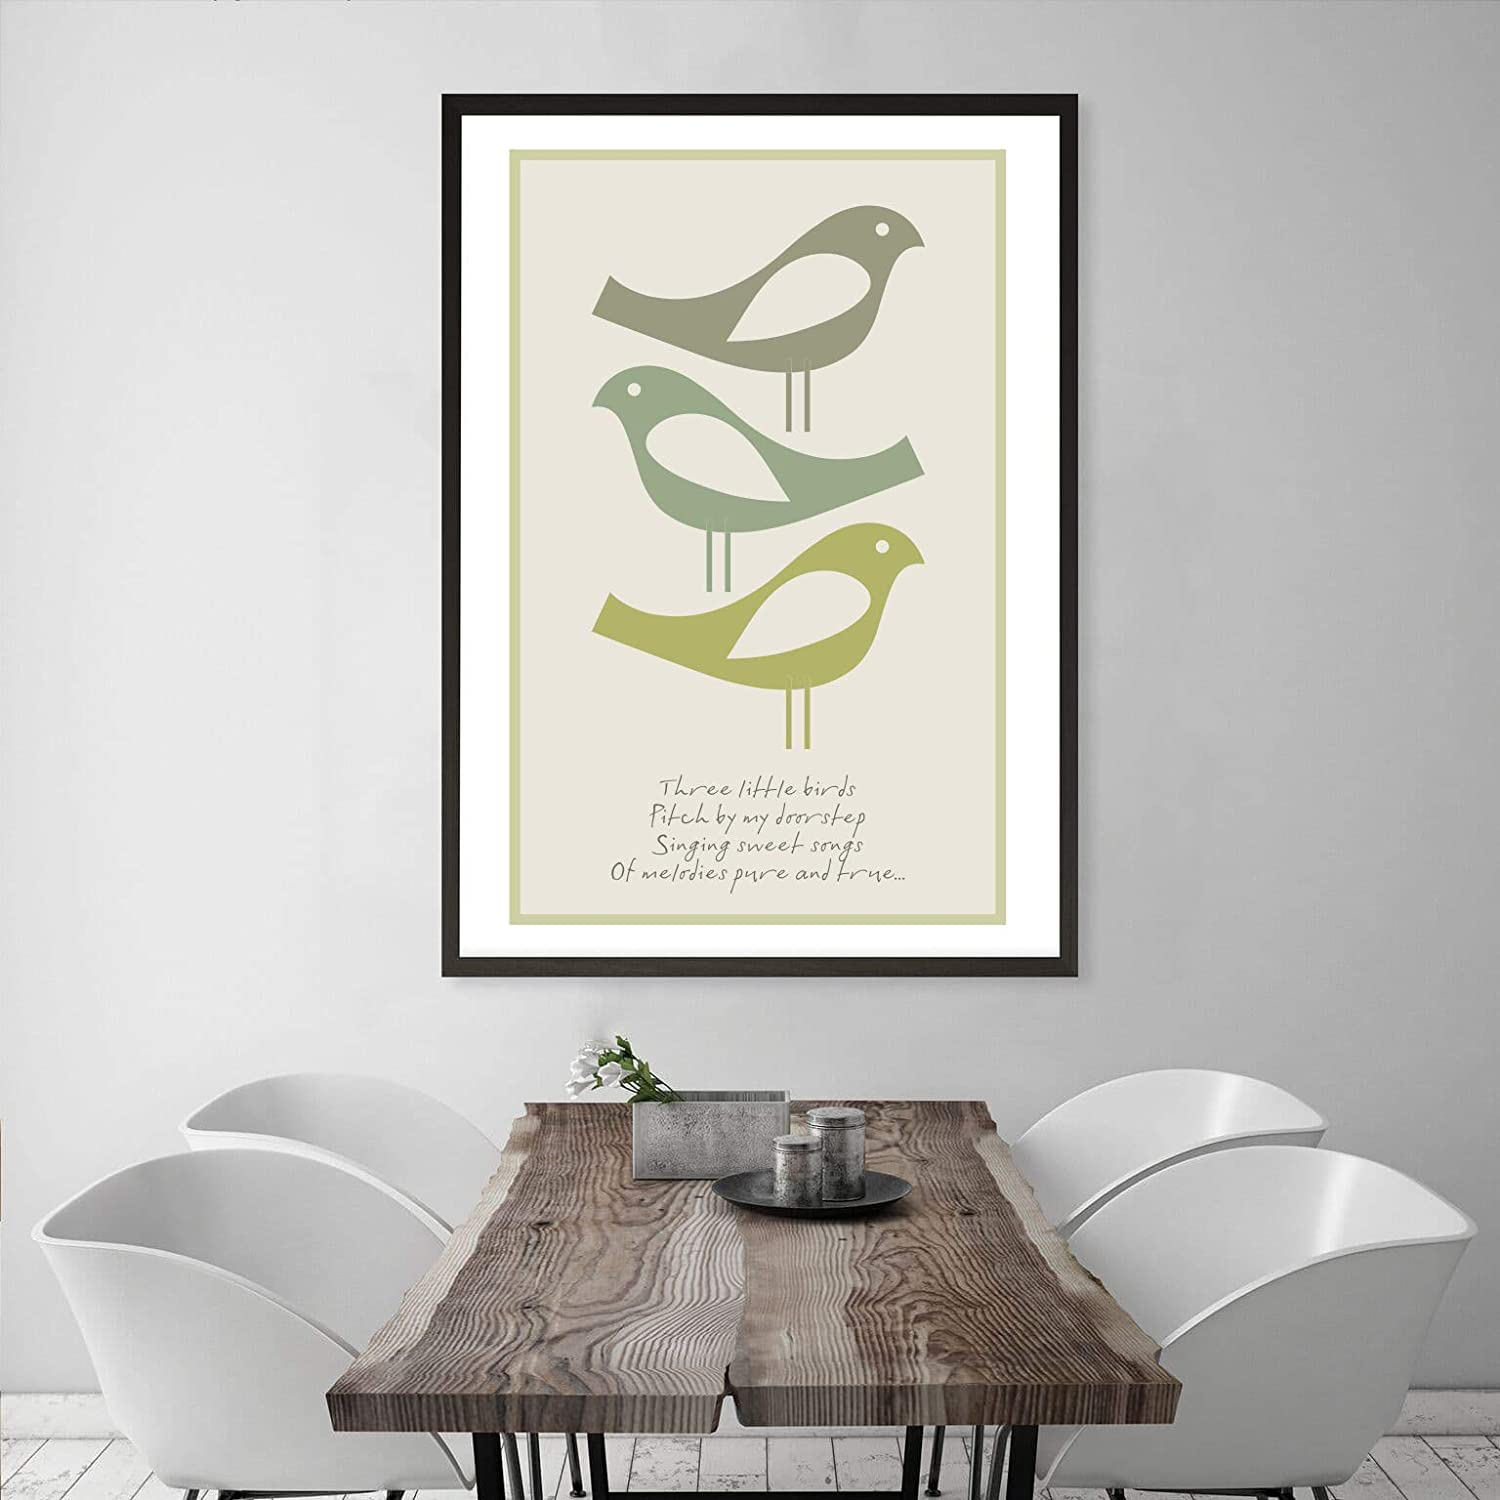 lowest Complete Free Shipping price VisualPhilosophy Three Little Birds - Bob 20 Marley x 16 Poster